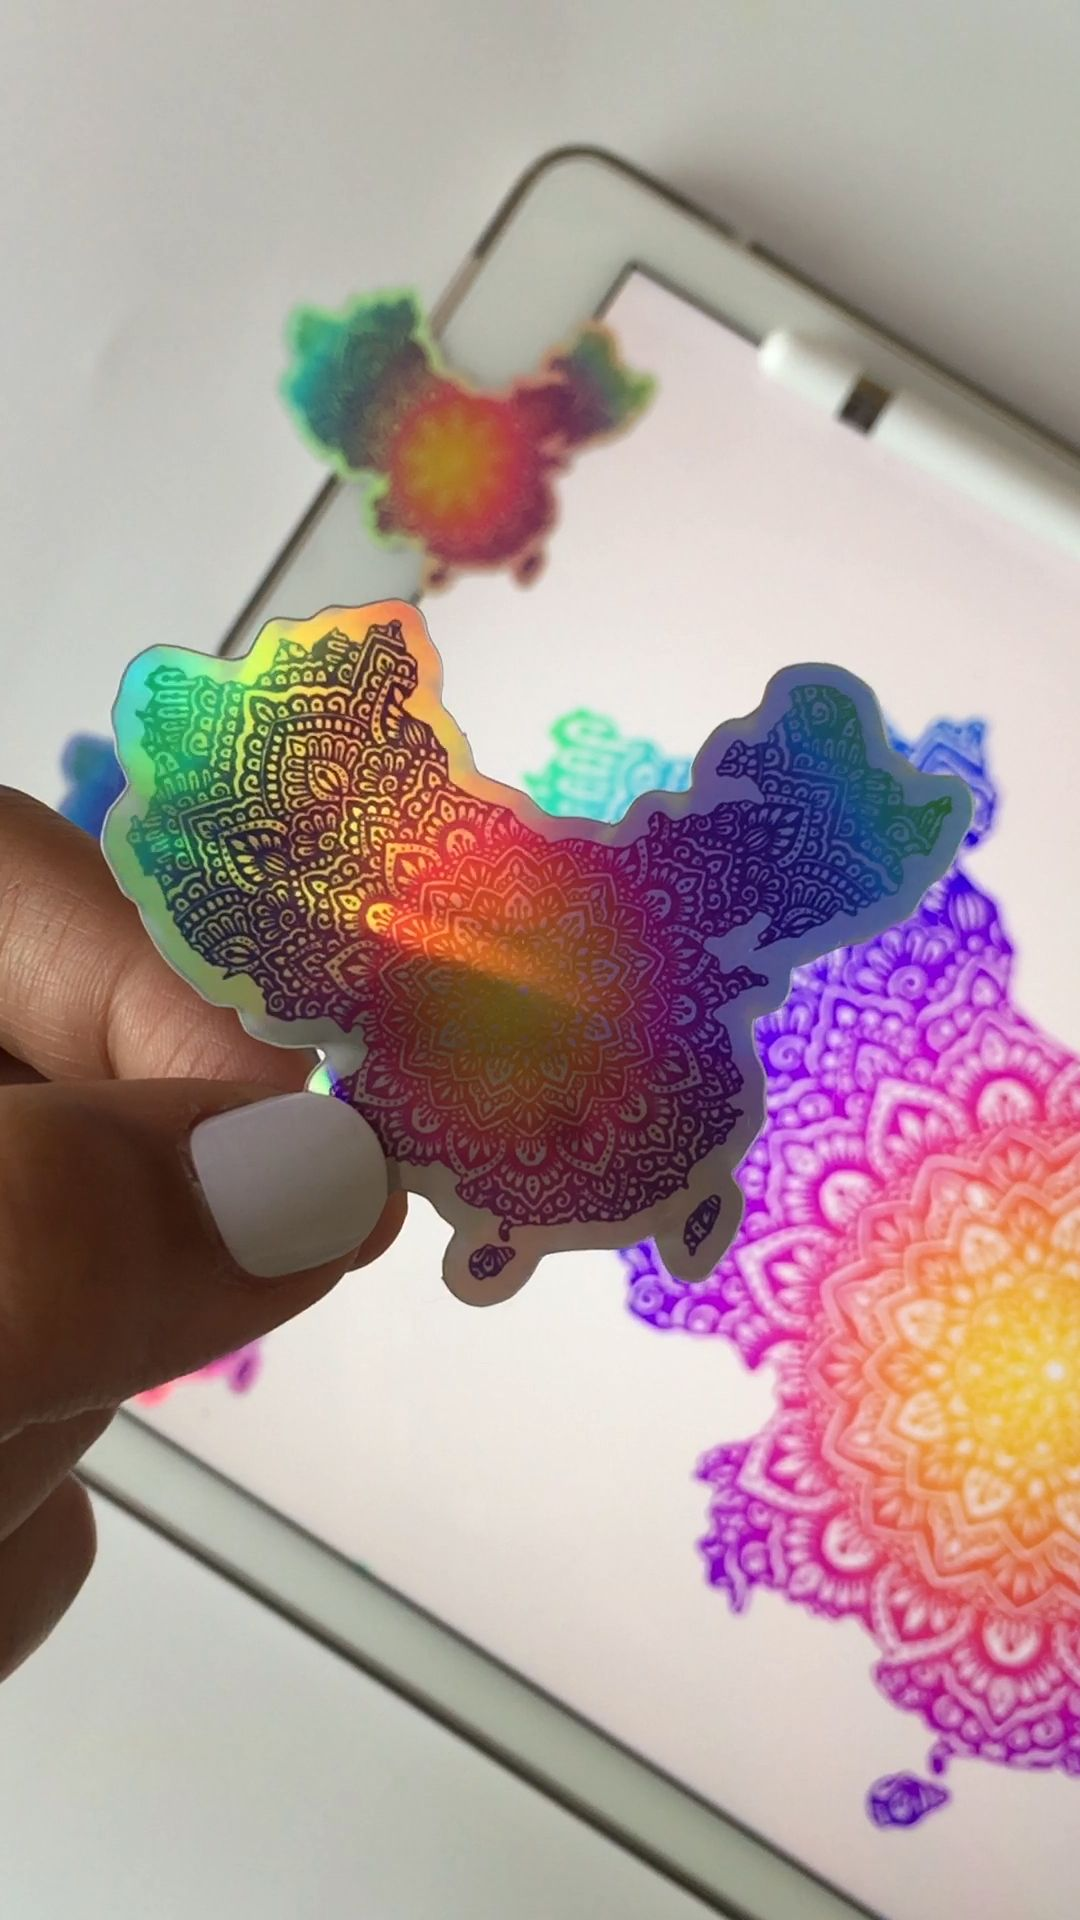 China map holographic stickers